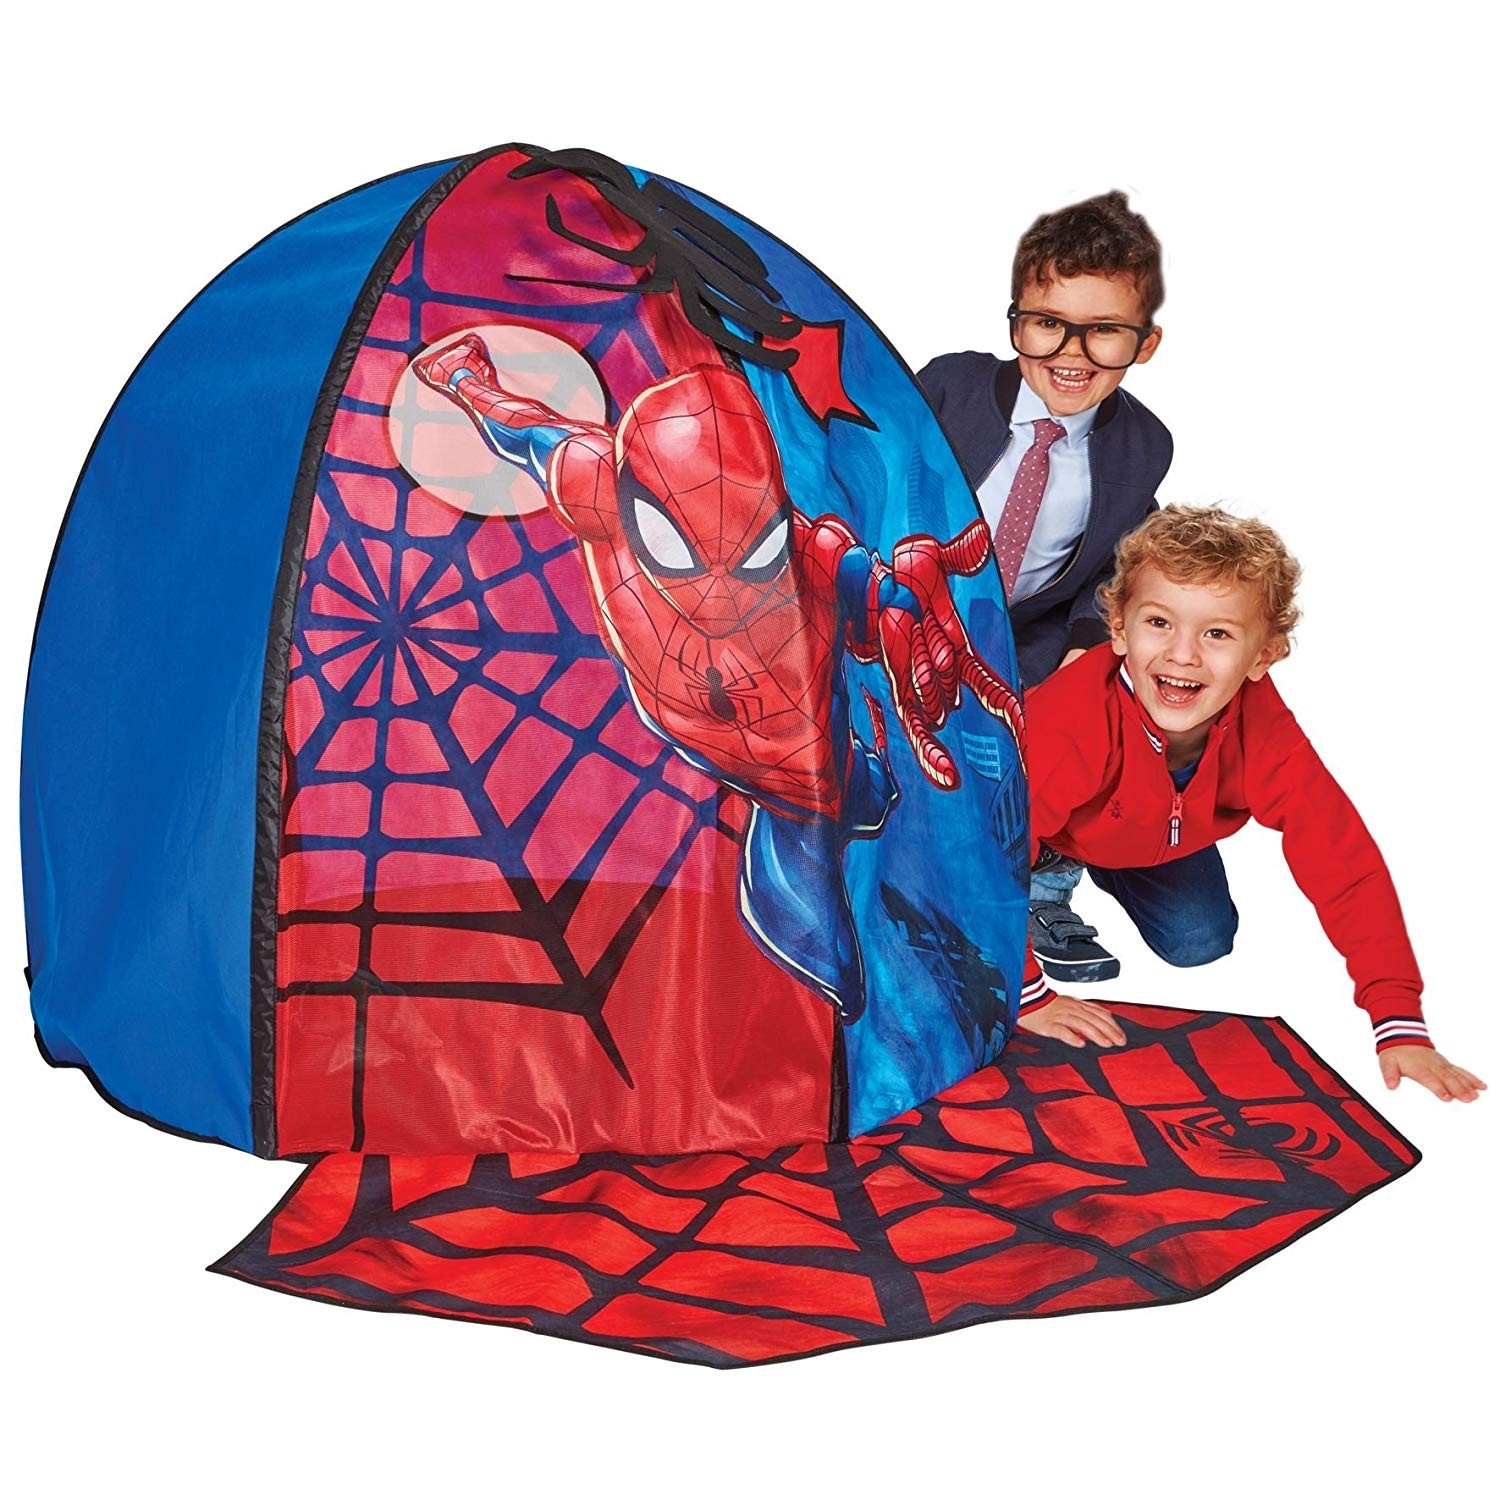 Tenda gioco Tana Segreta di Spiderman